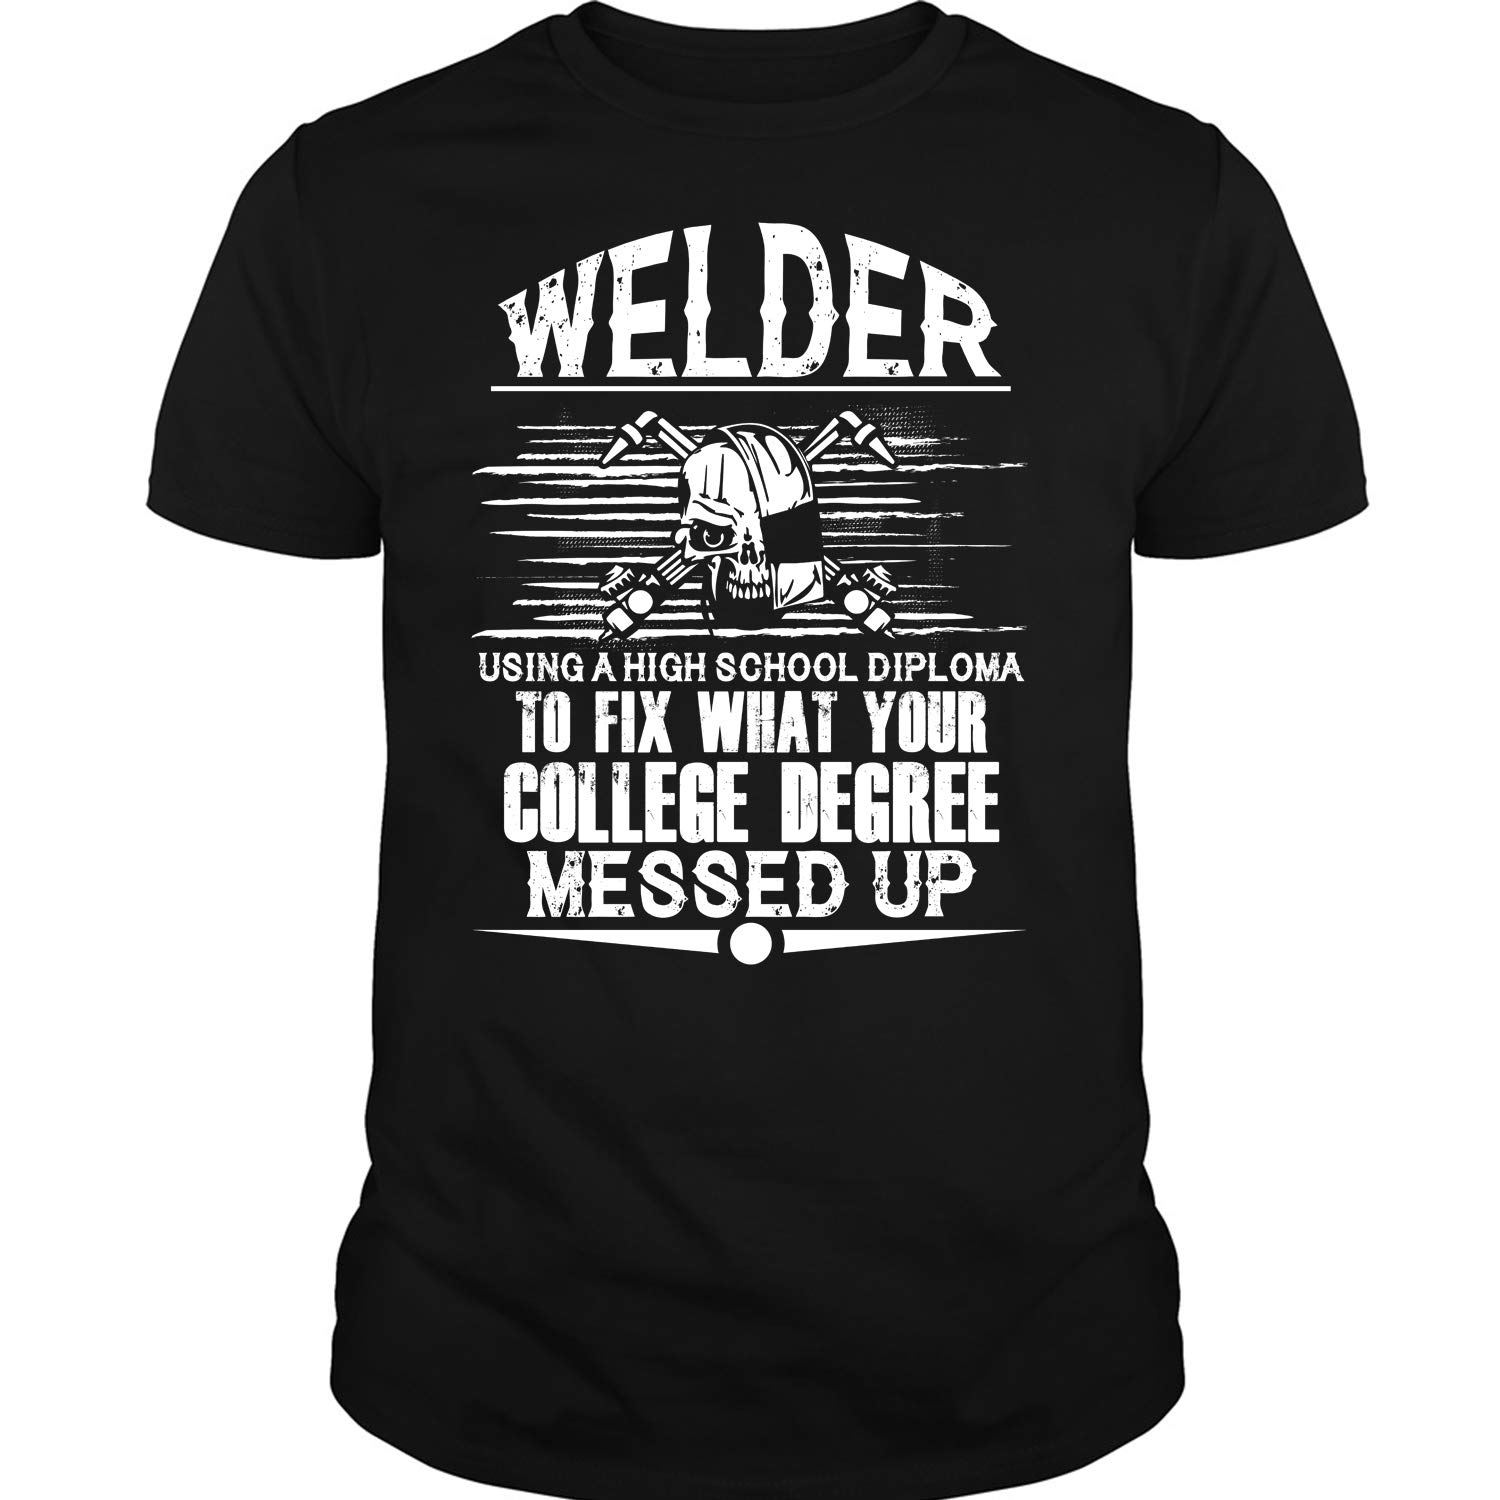 To Fix What Your College Degree T Shirt Welder Using A High School Diploma T Shirt 8210